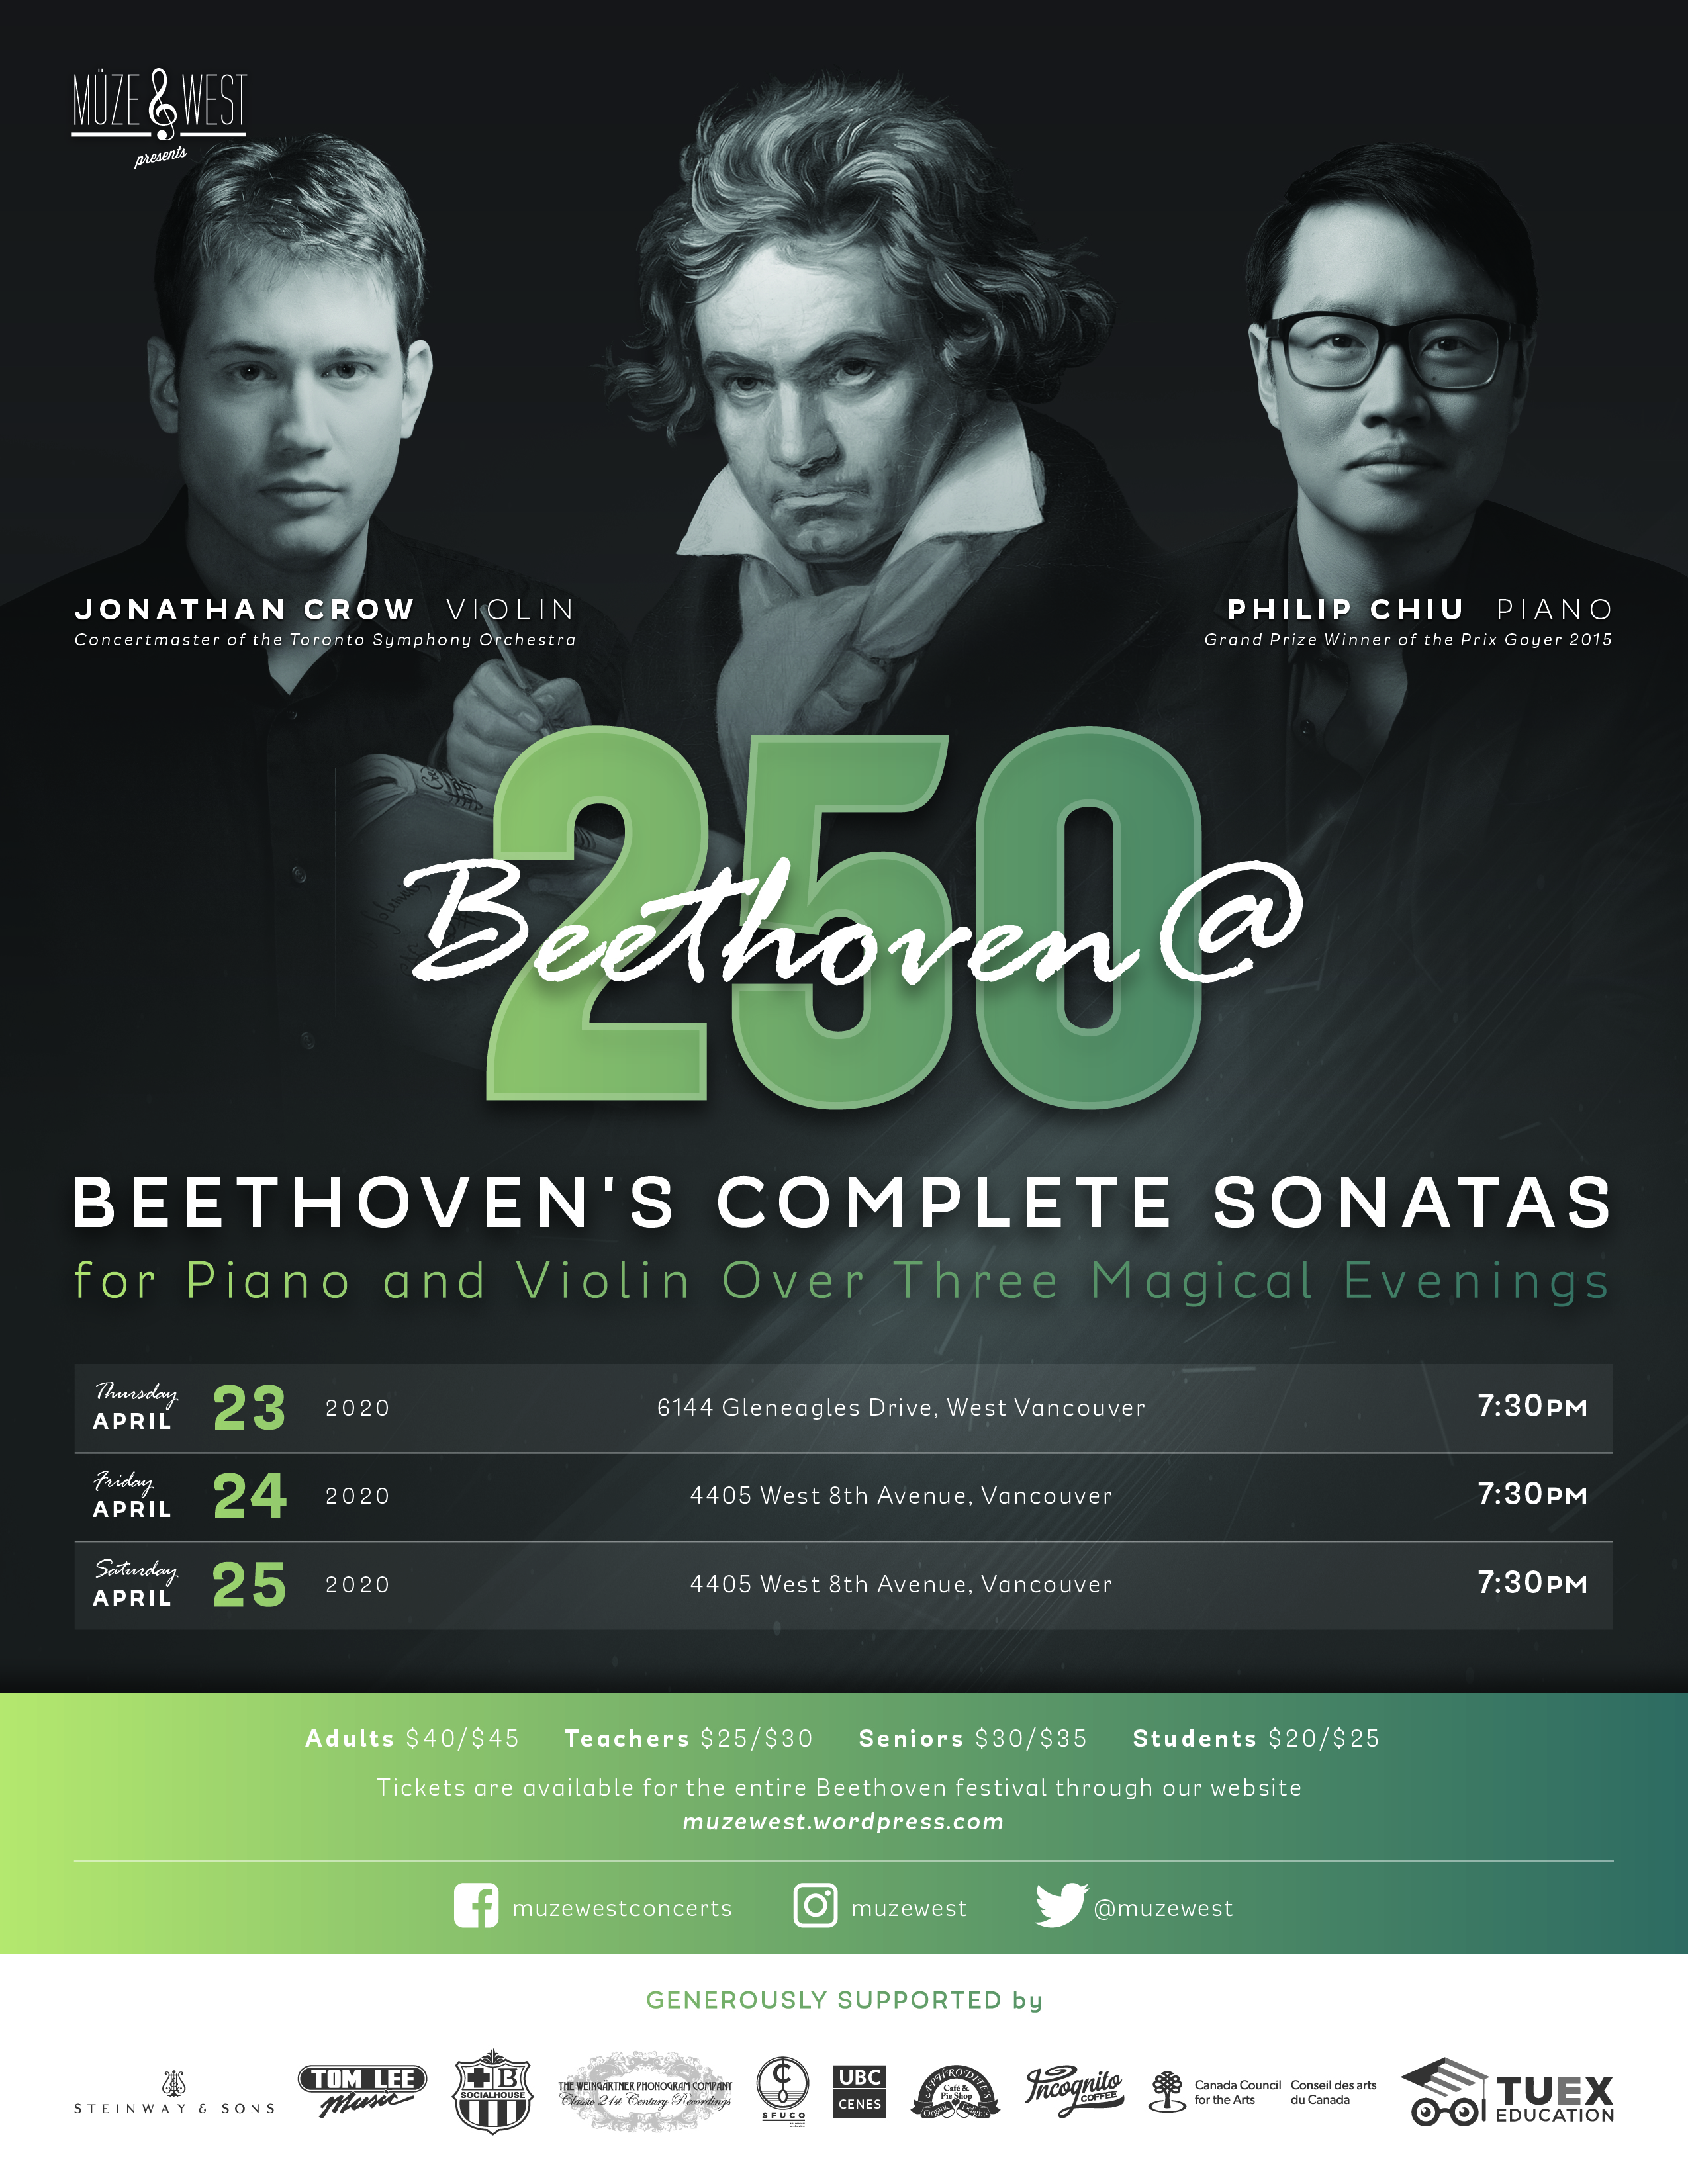 Beethoven @ 250 Festival Part 2 (date to be determined)